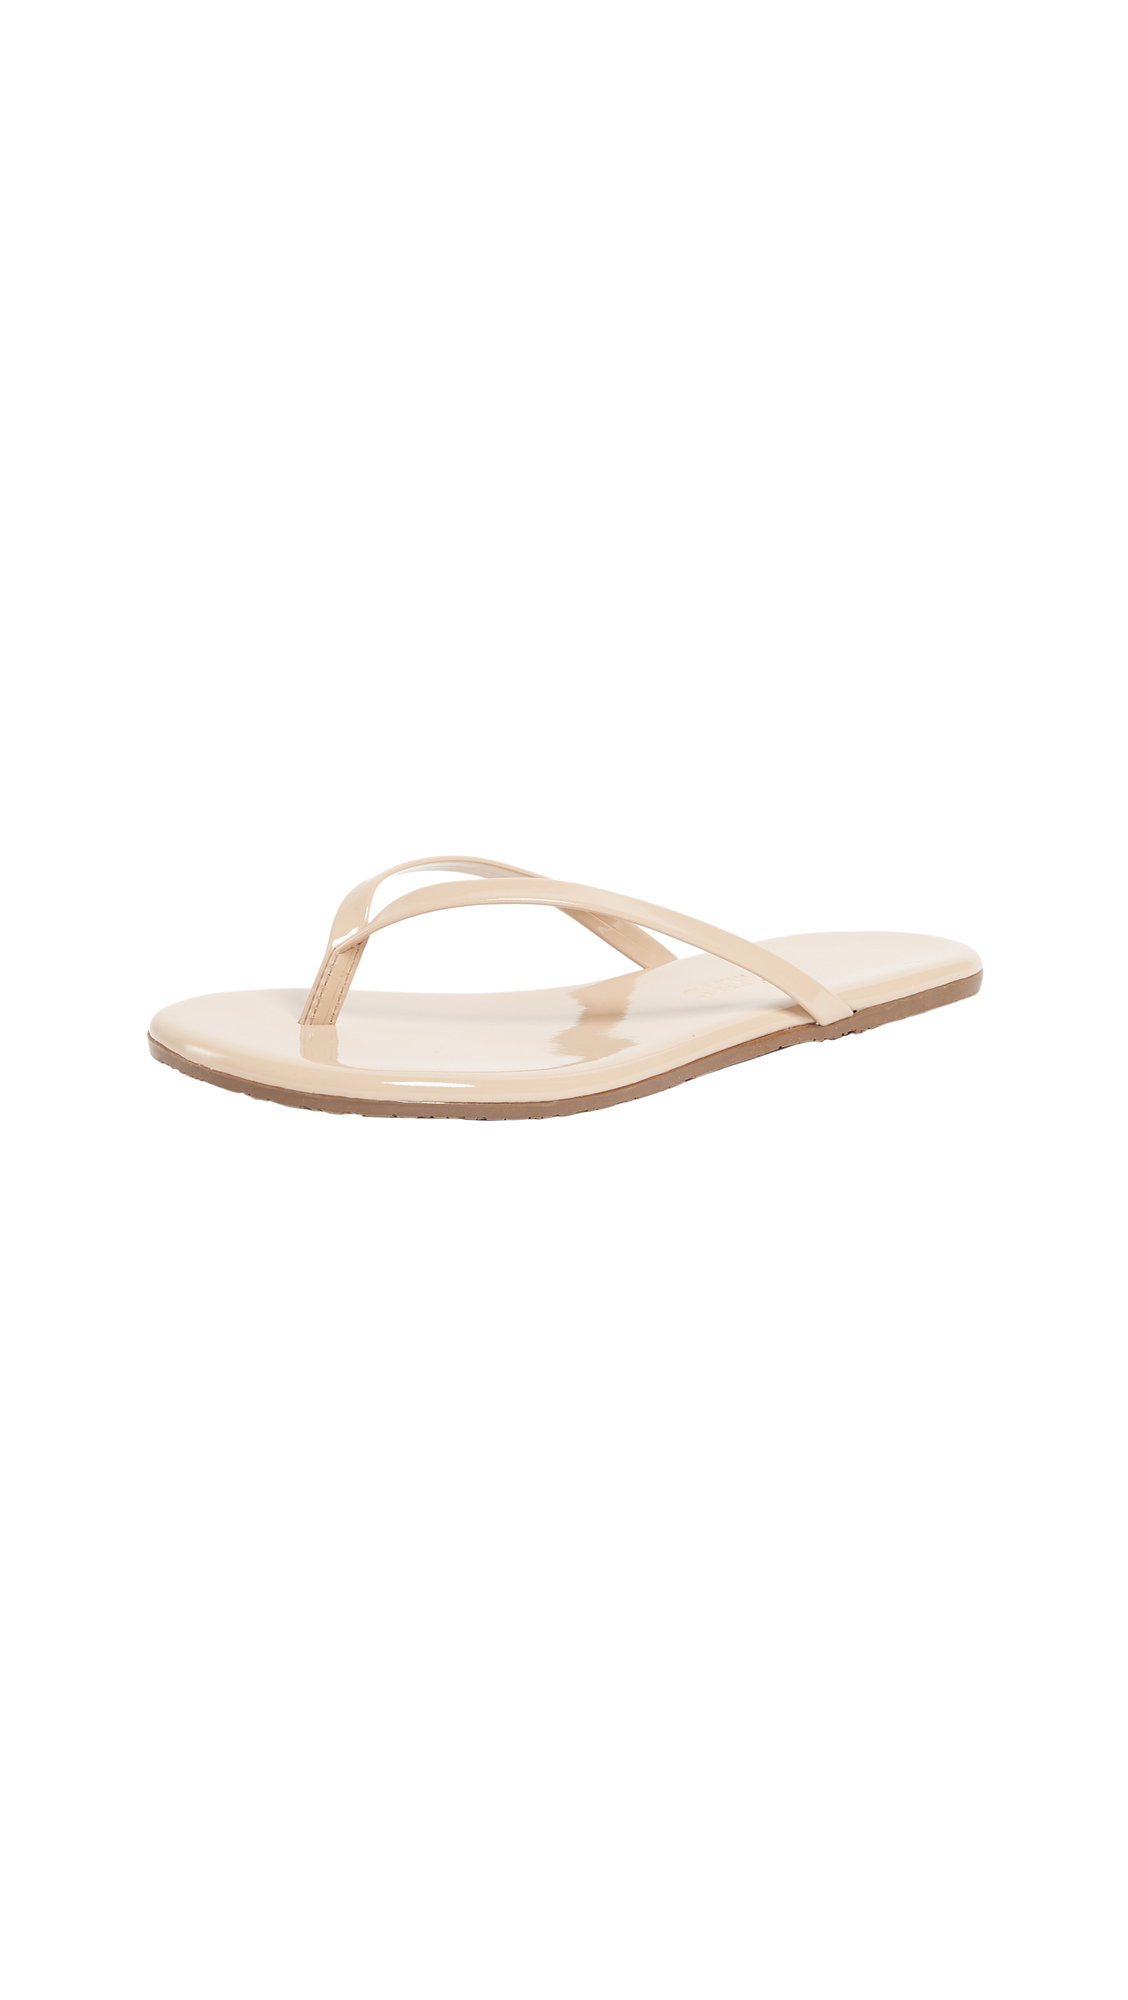 TKEES Foundations Glosses Flip Flops - Sunkissed